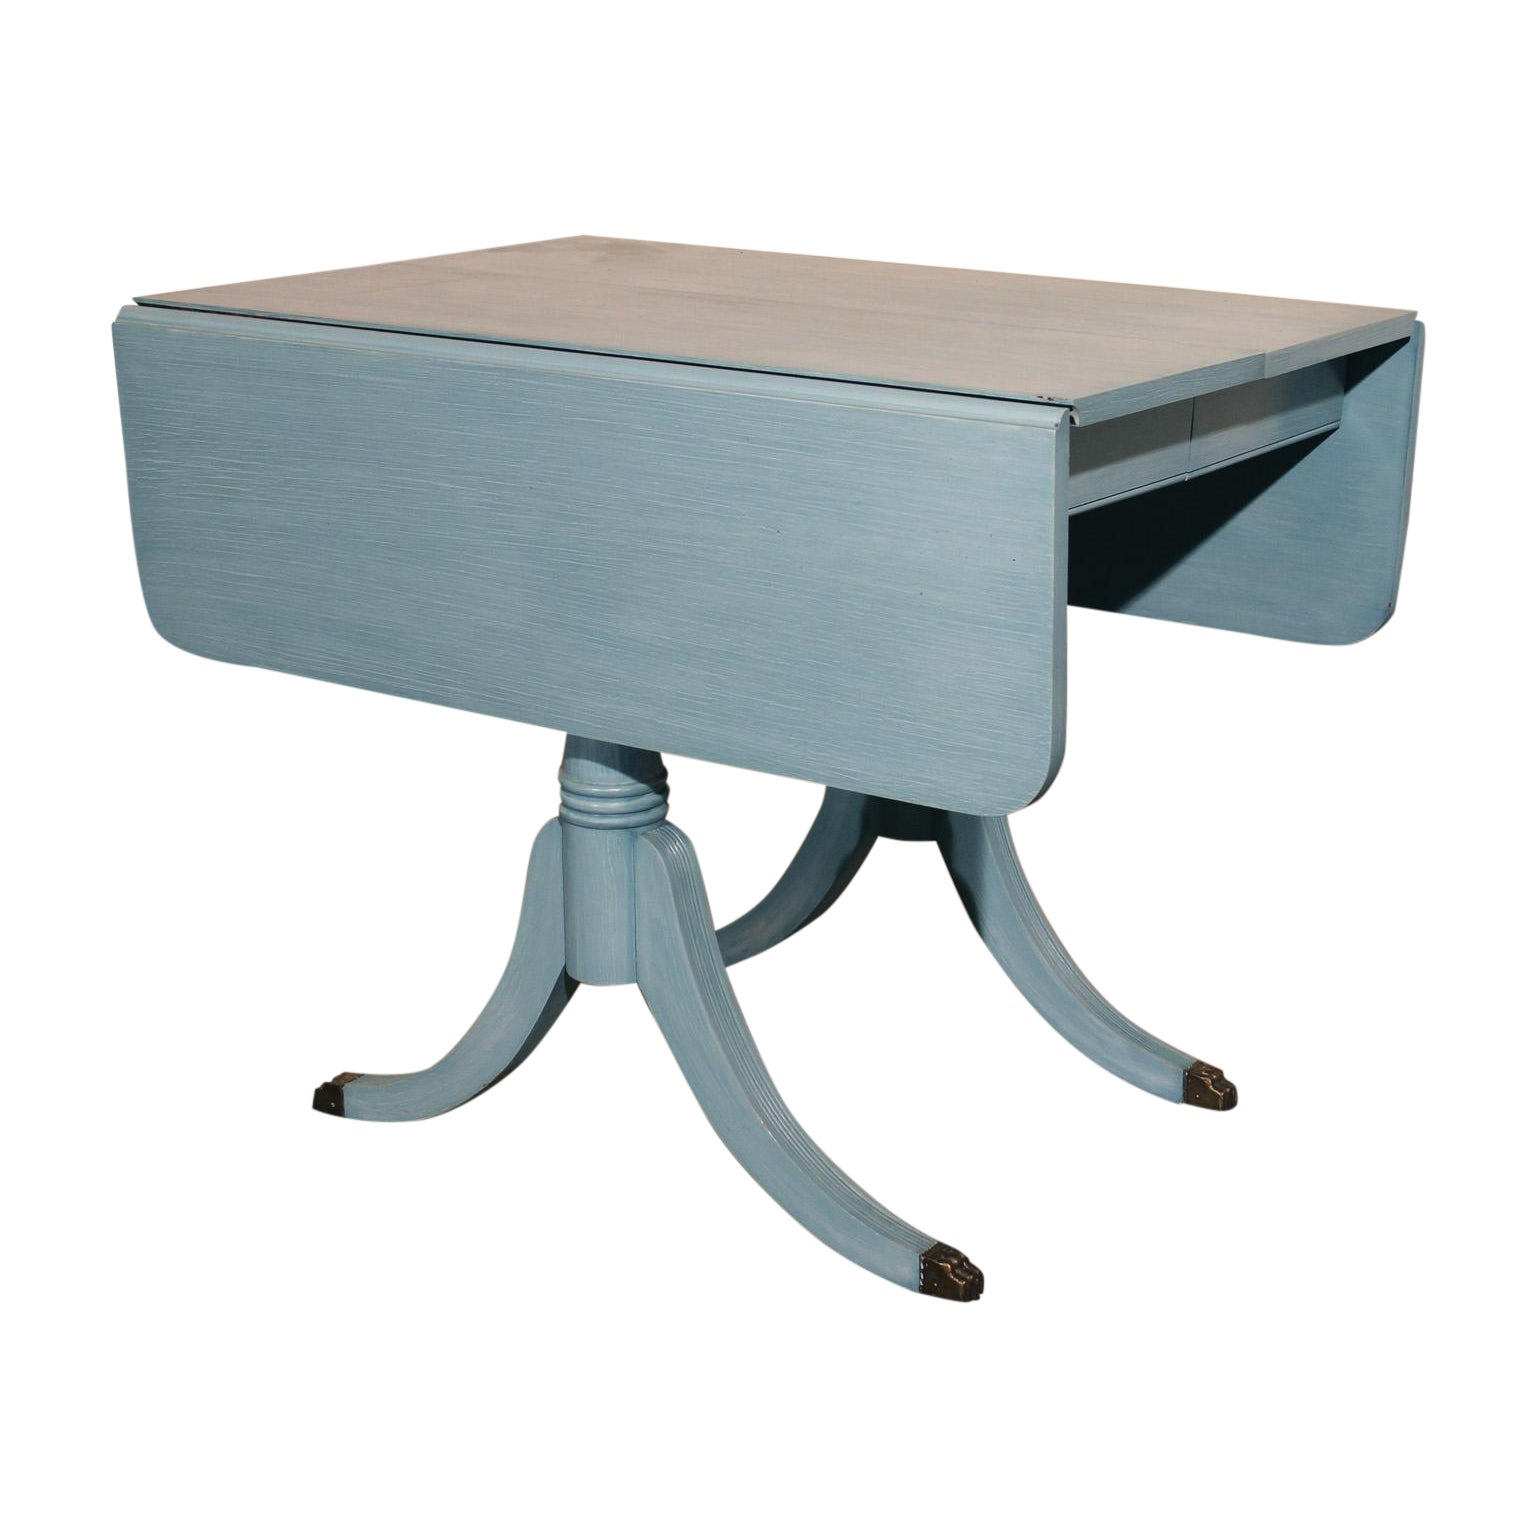 Shabby Chic Pale Blue Dining Table | Chairish